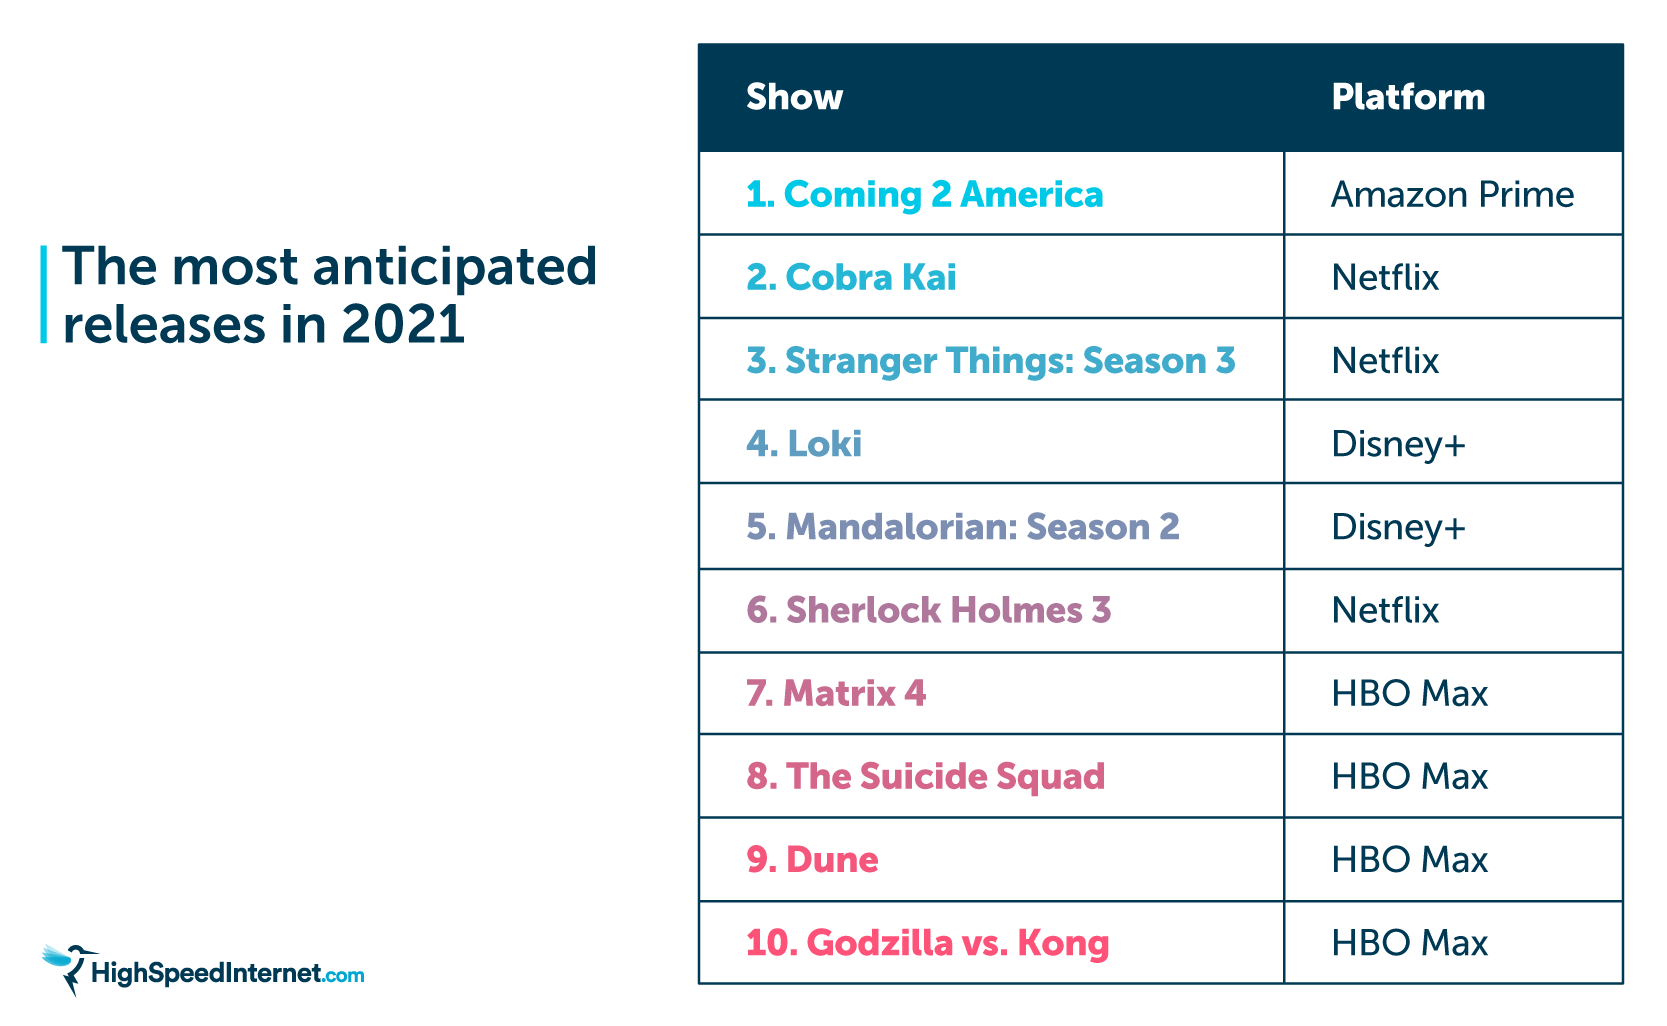 Most anticipated releases in 2021